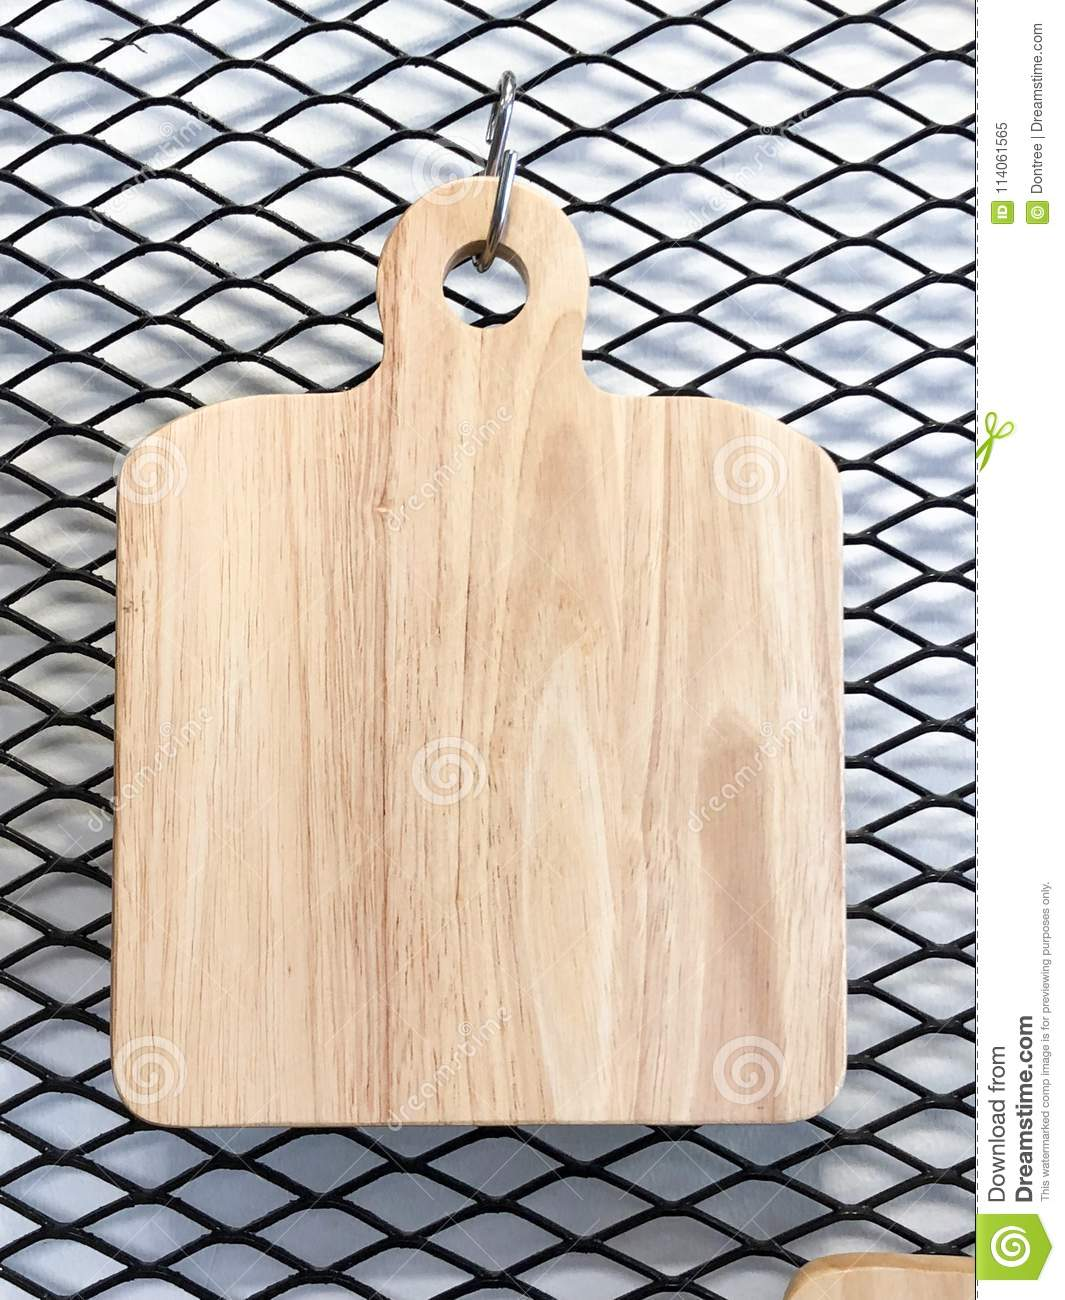 Chopping Cutting Board Hanging In Kitchen Stock Image Image Of Rural Board 114061565